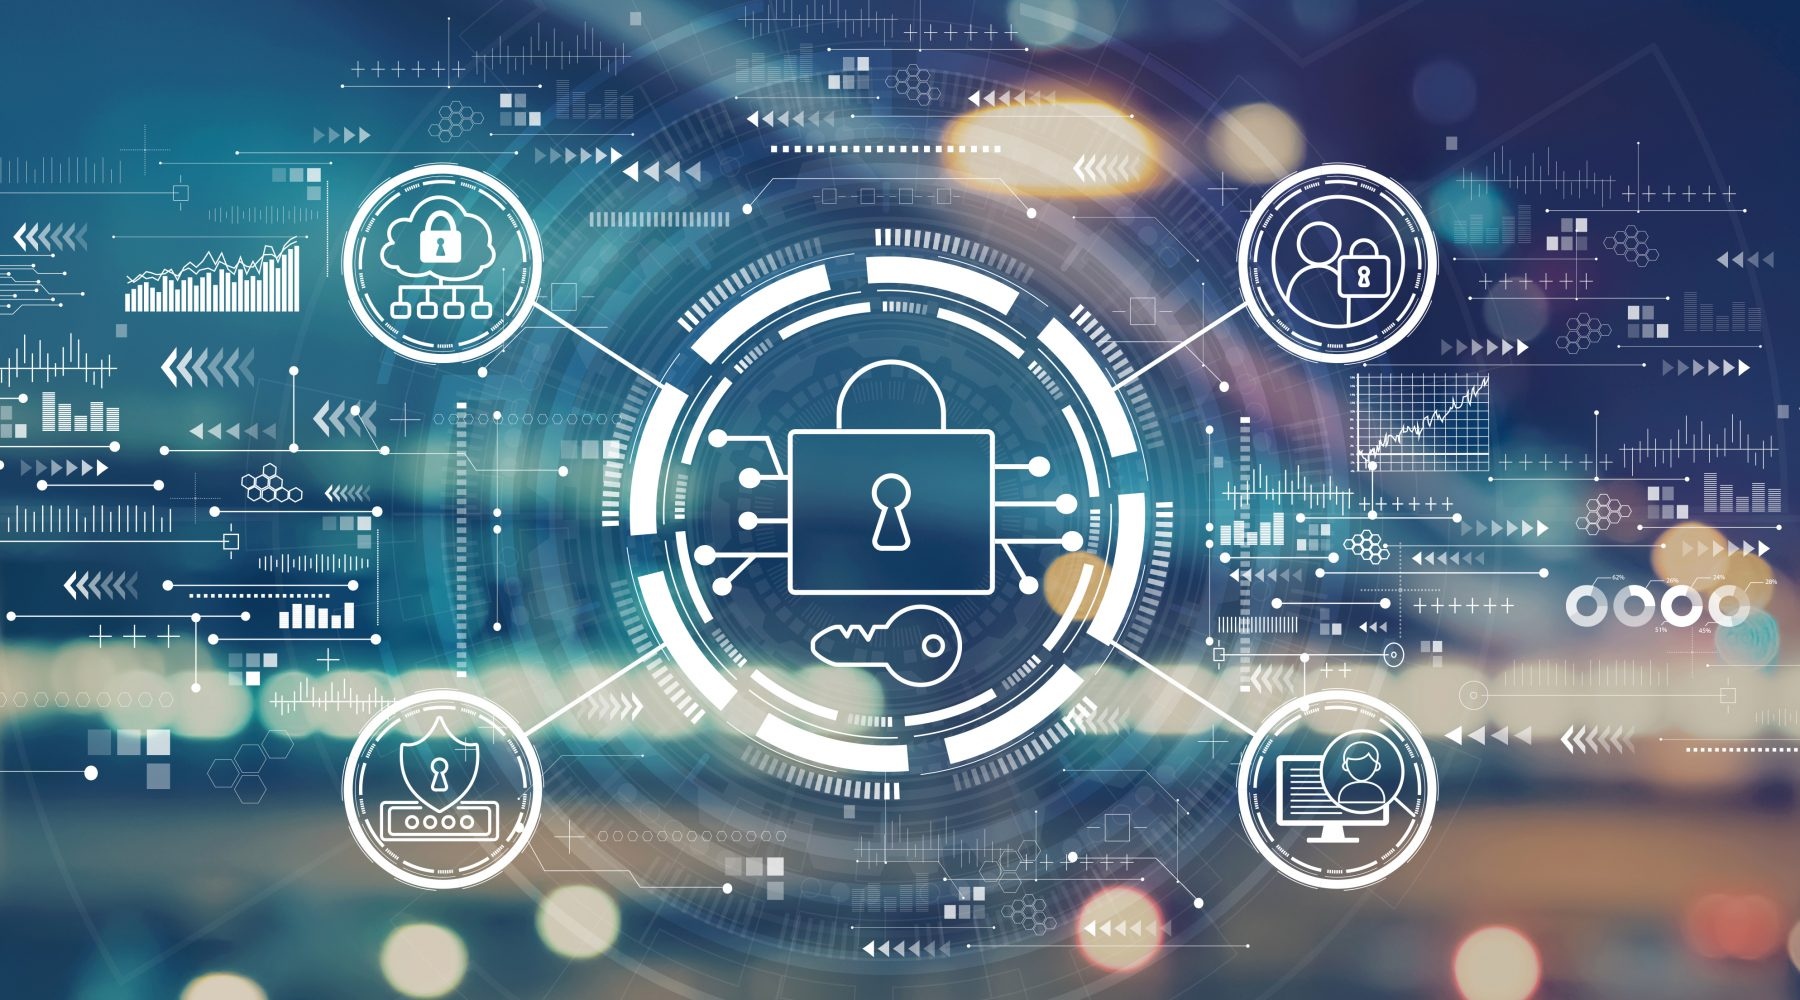 5 Elements to Secure Embedded System – Part #2 Root-of-Trust (RoT)